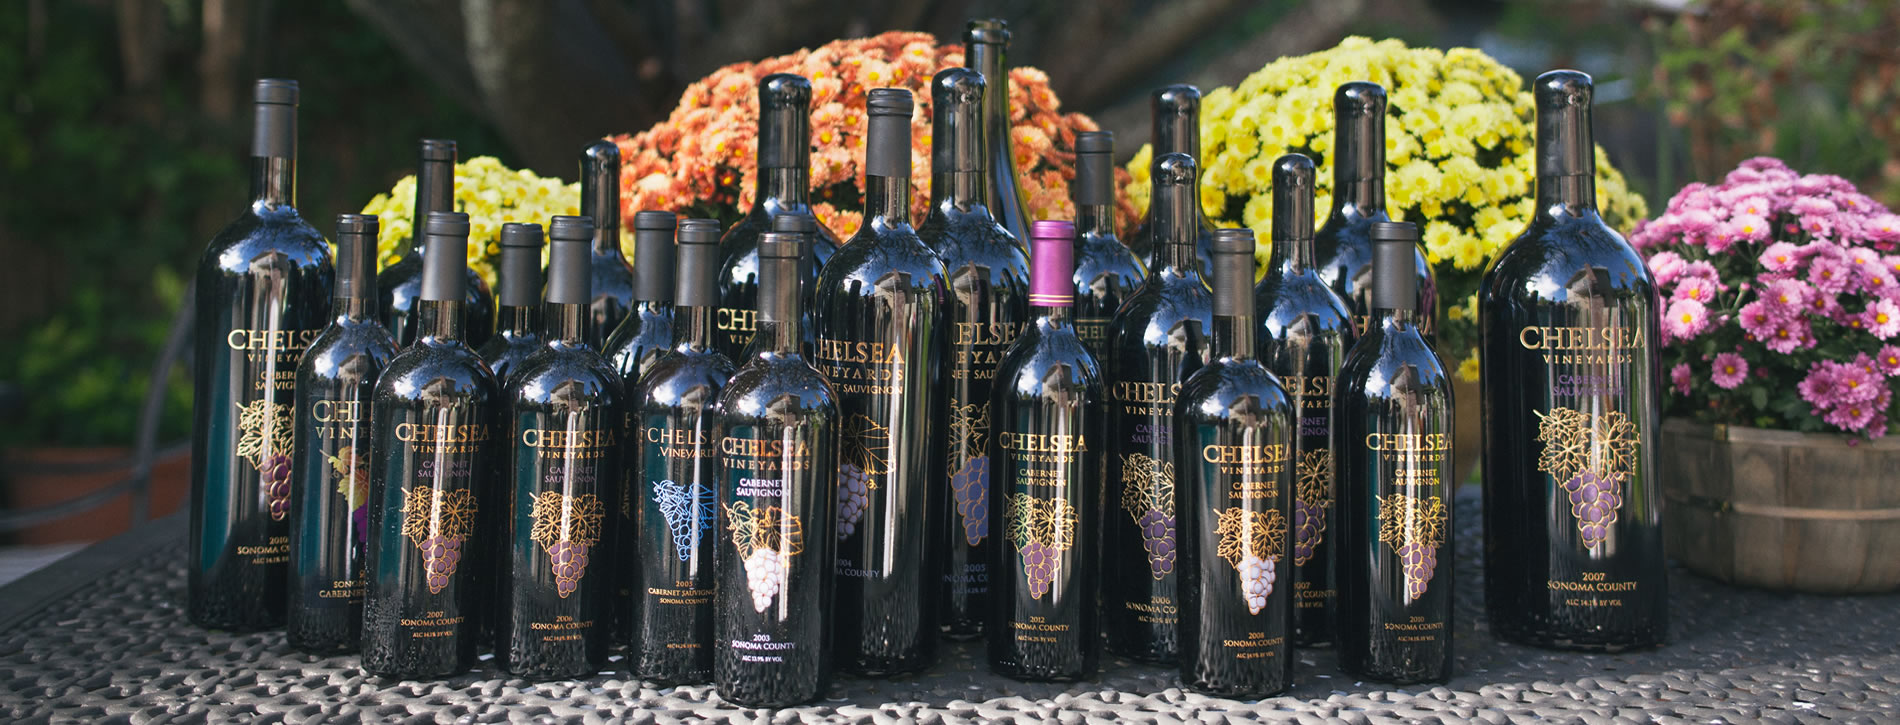 napa valley estate grown wine